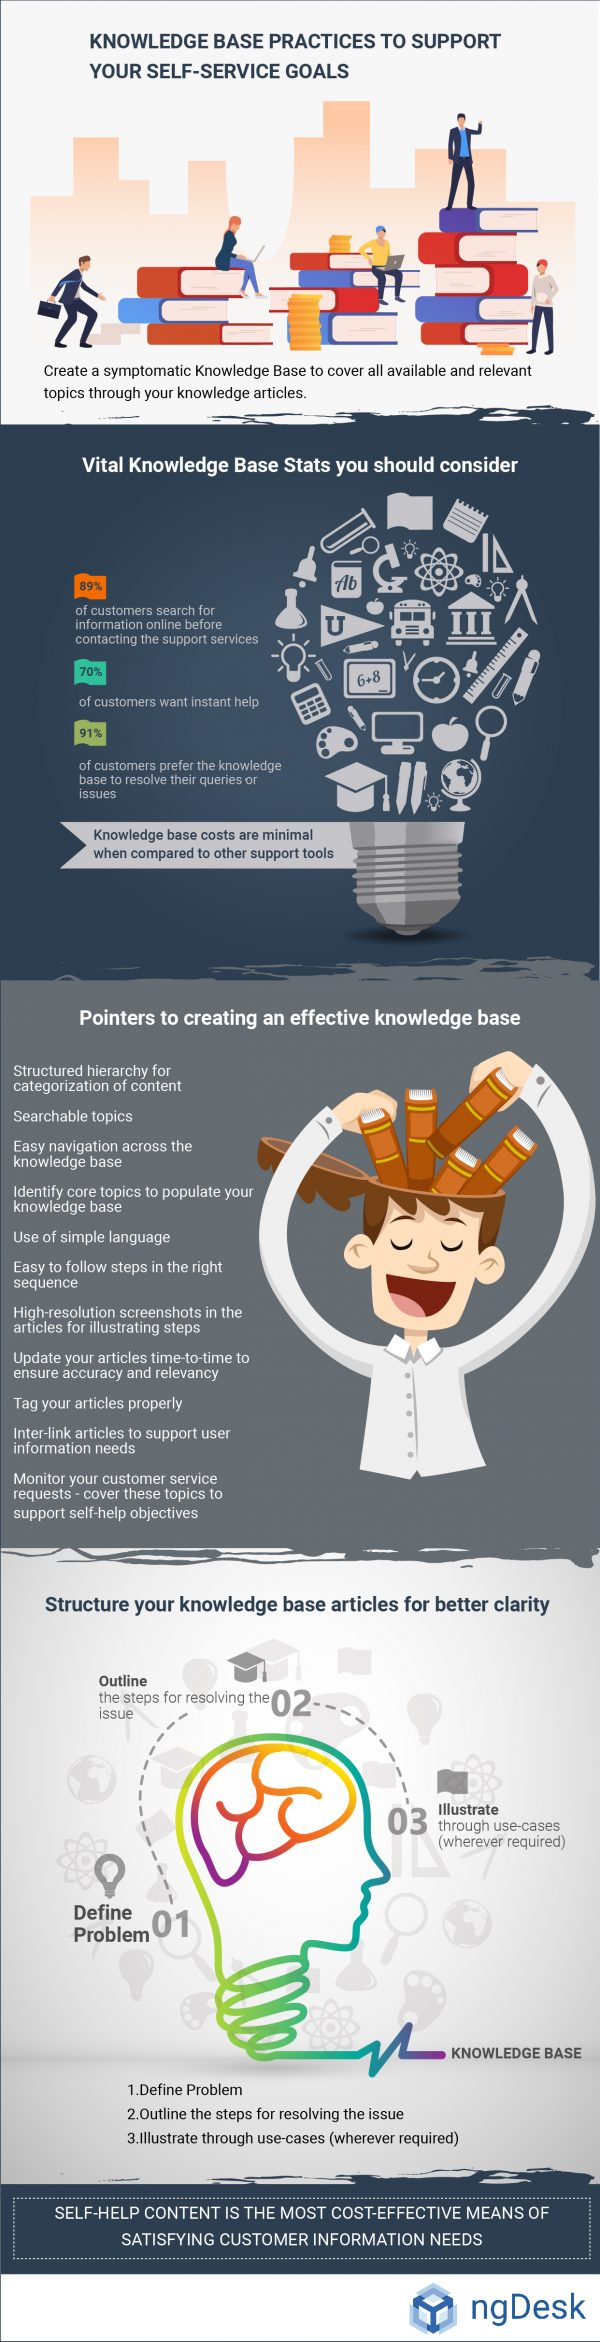 knowledge management practices infographic